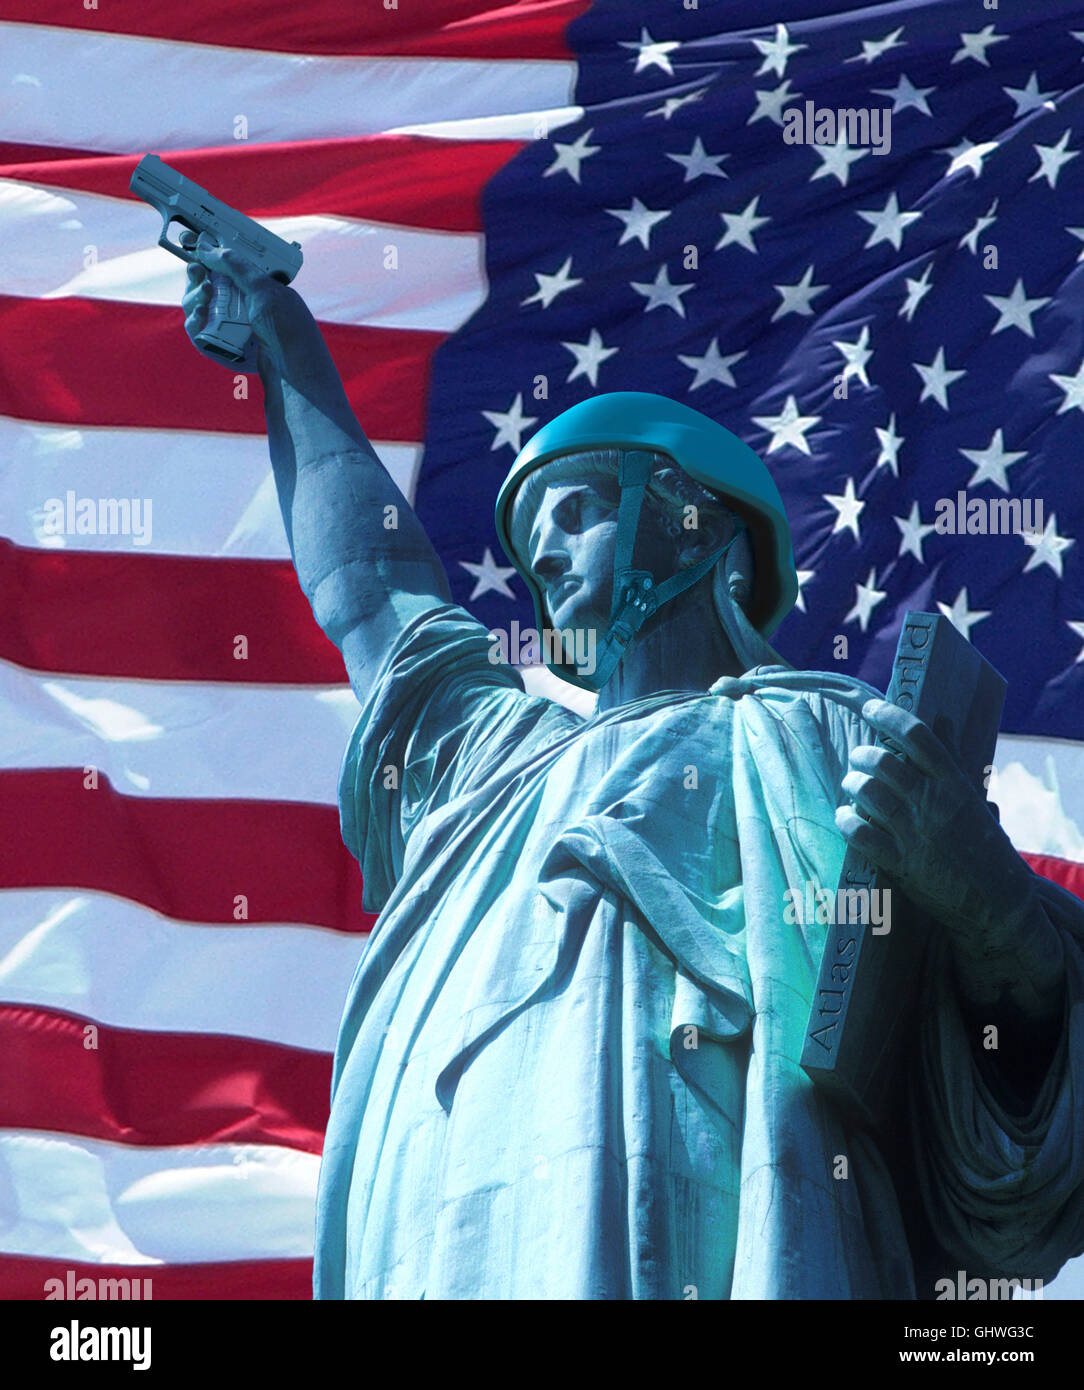 Statue of Liberty wearing army helmet and holding a pistol and an Atlas of the world, with stars and stripes background - Stock Image